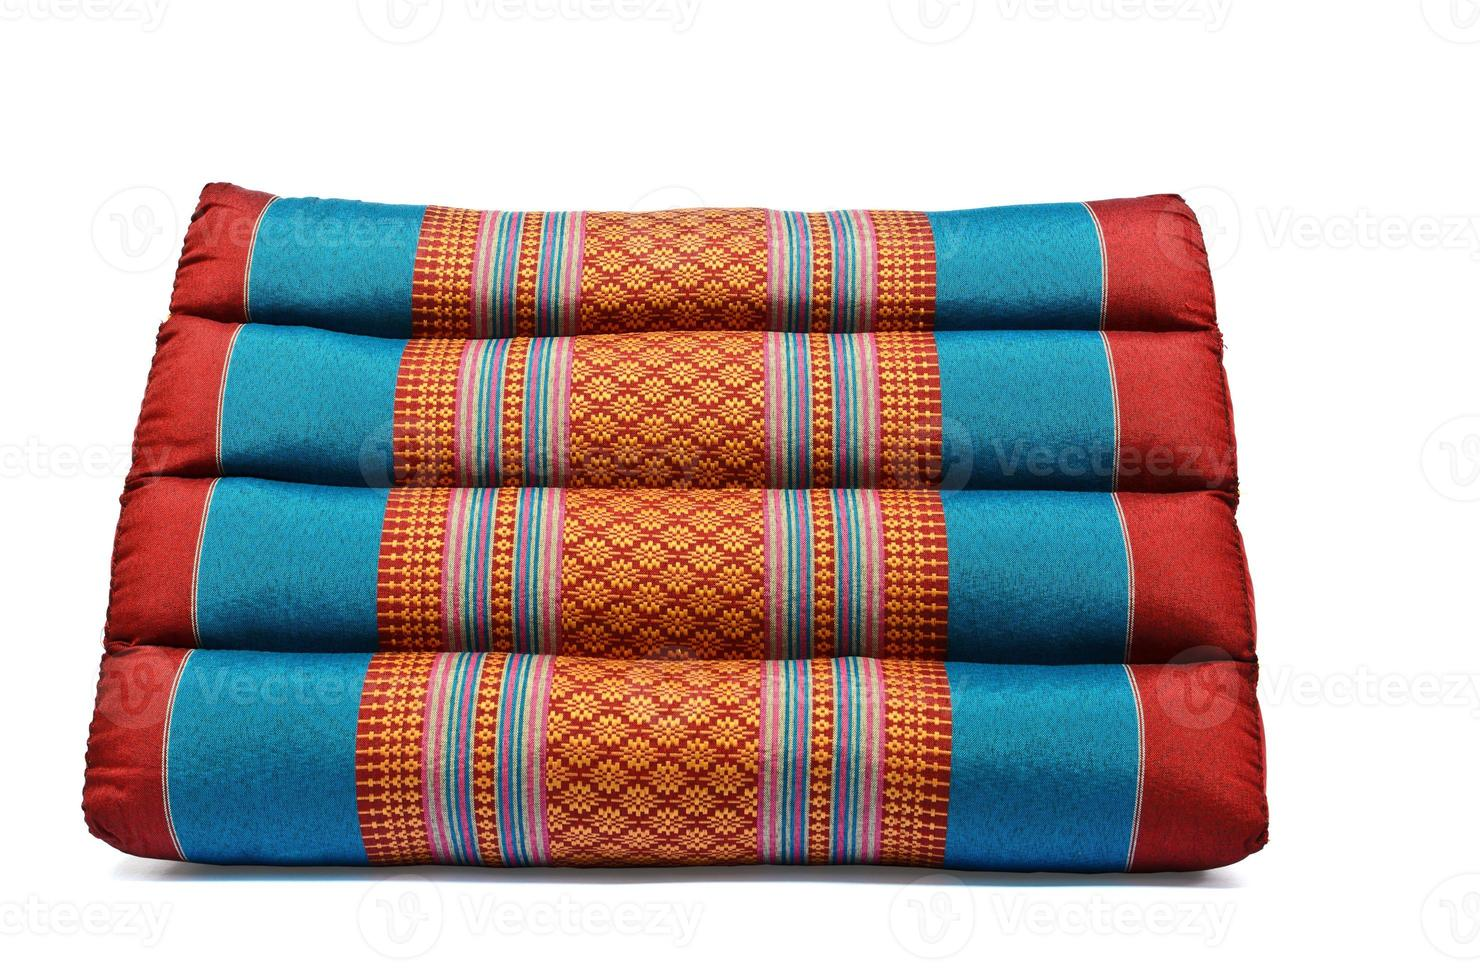 Tradition native Thai style pillow photo